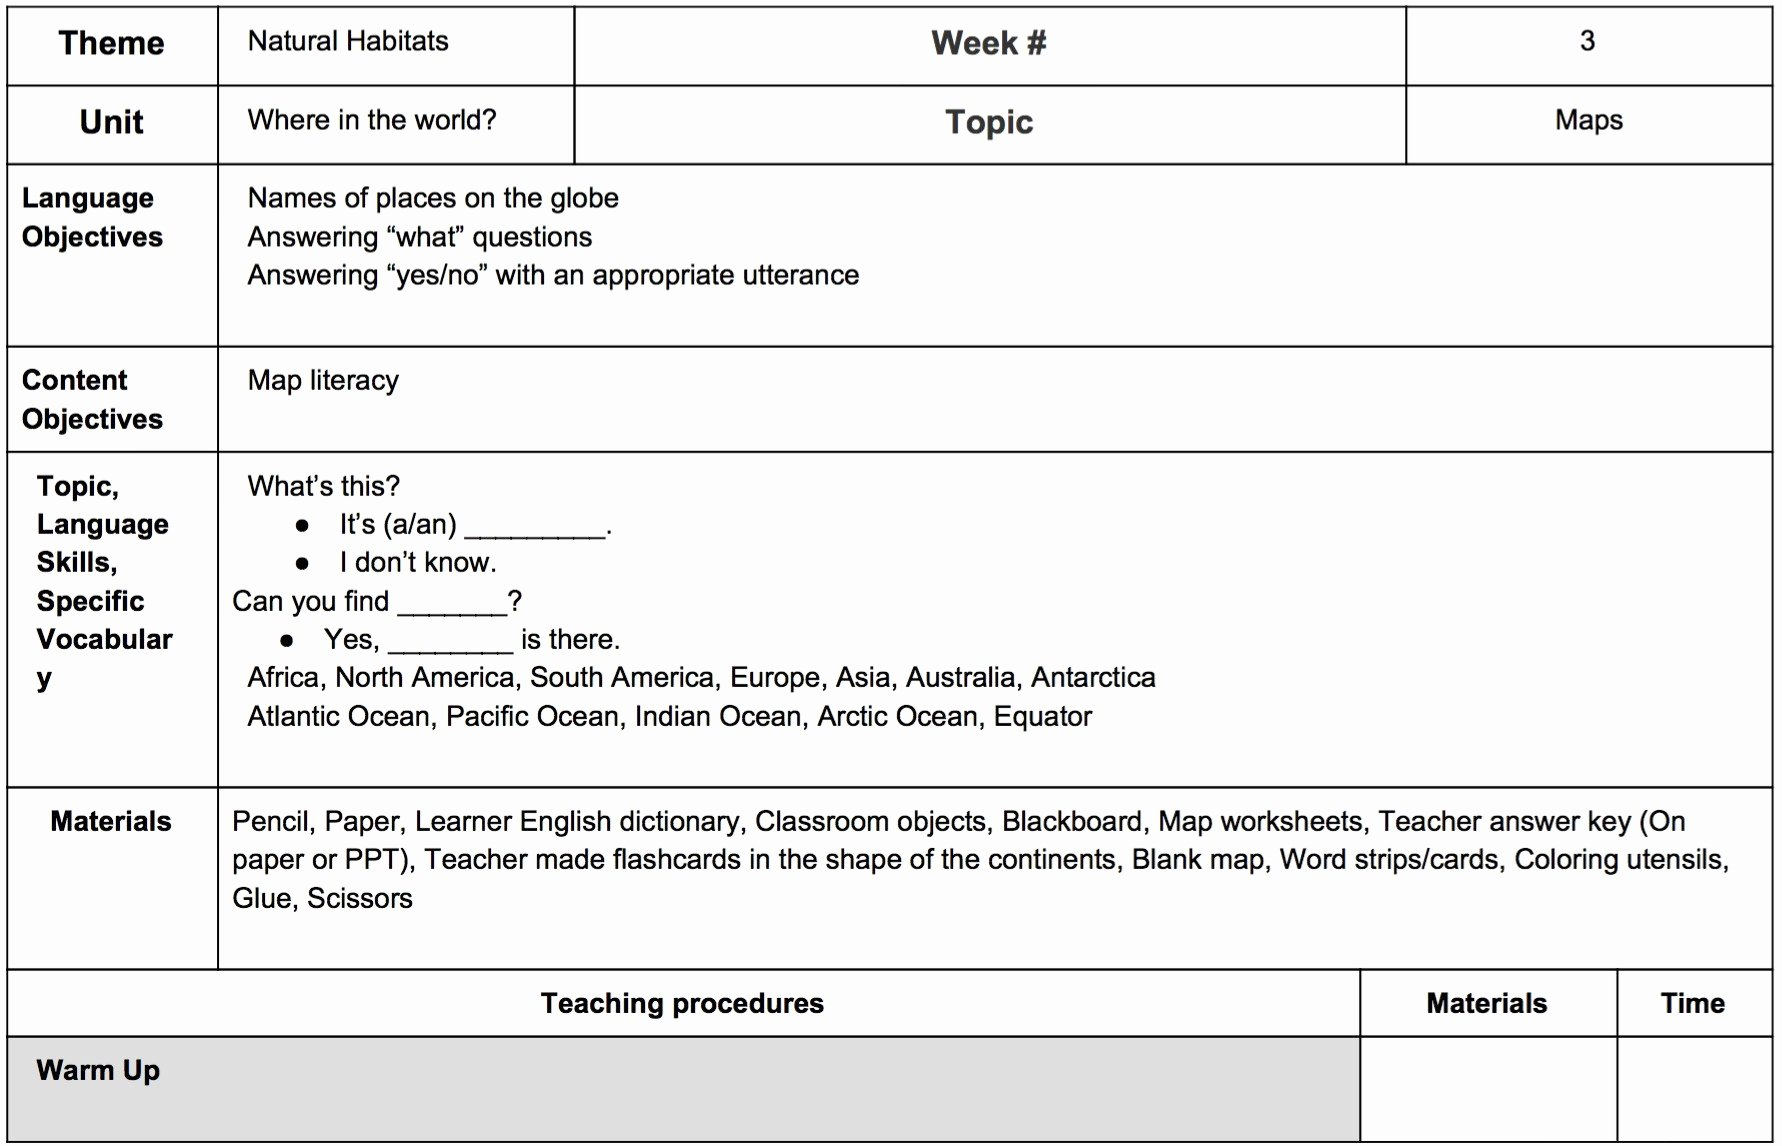 Siop Lesson Plan Template 2 Beautiful Siop Lesson Plan Template 2 Luxury Lesson Plan Template Professional – Lesson Plan